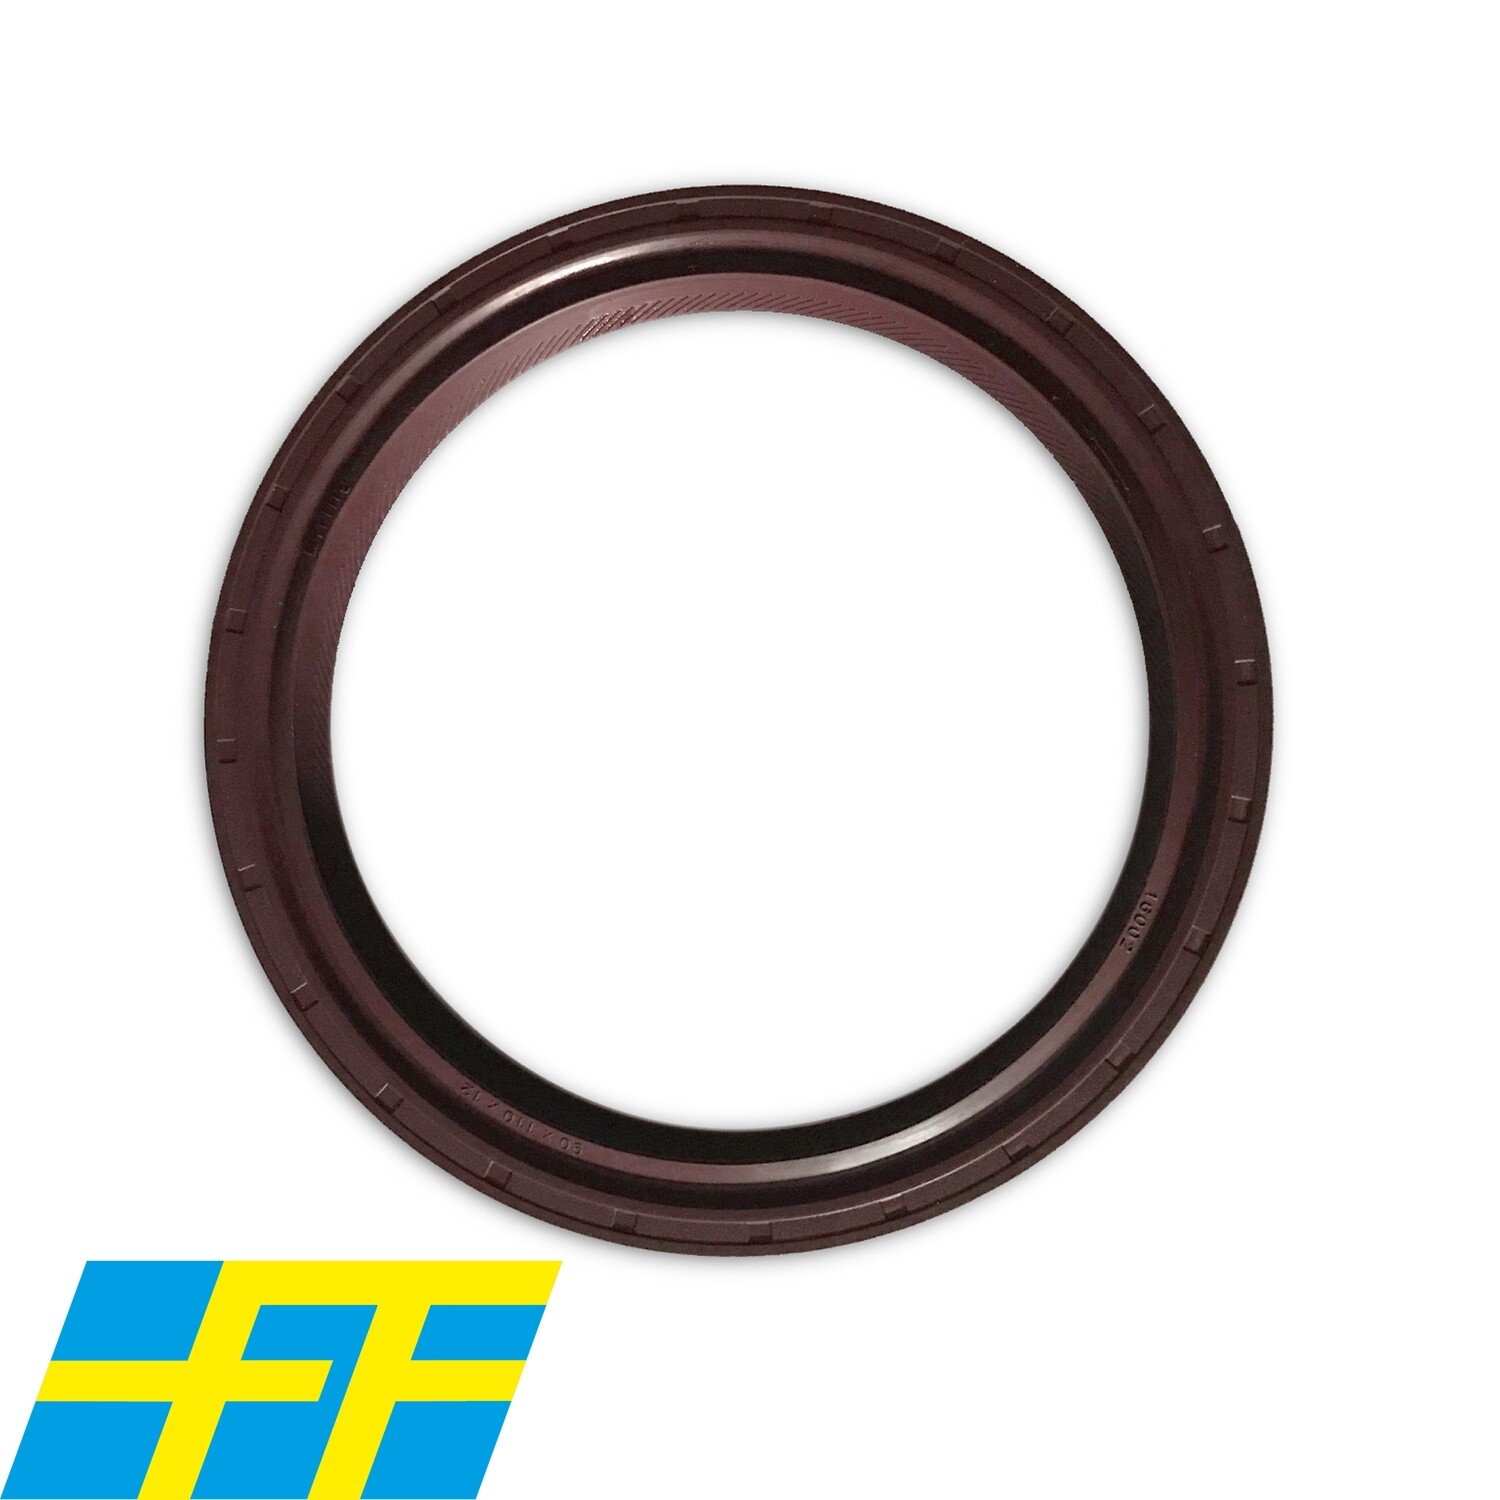 Volvo B18 B20 Crankshaft Rear Main Oil Seal